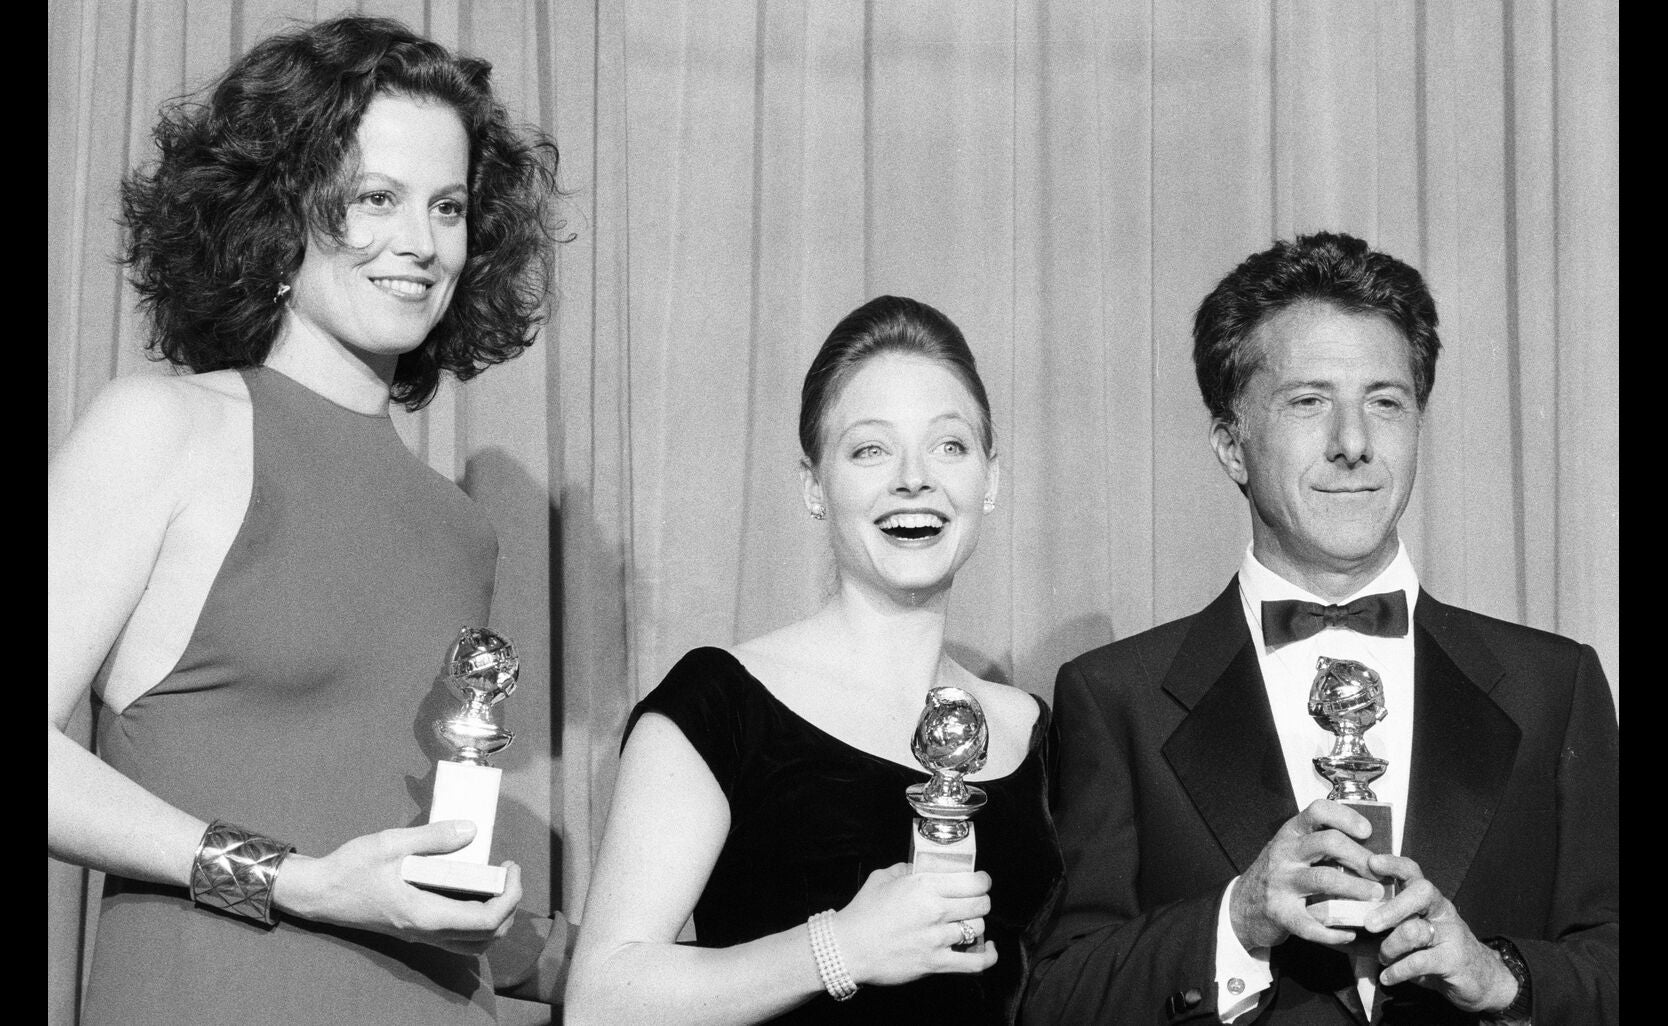 1989_gg46_sigourney_weaver_jodie_foster_dustin_hoffman_best_actress_actor_drama-gorillas_in_the_mist_accused_rain_man_ng.jpg